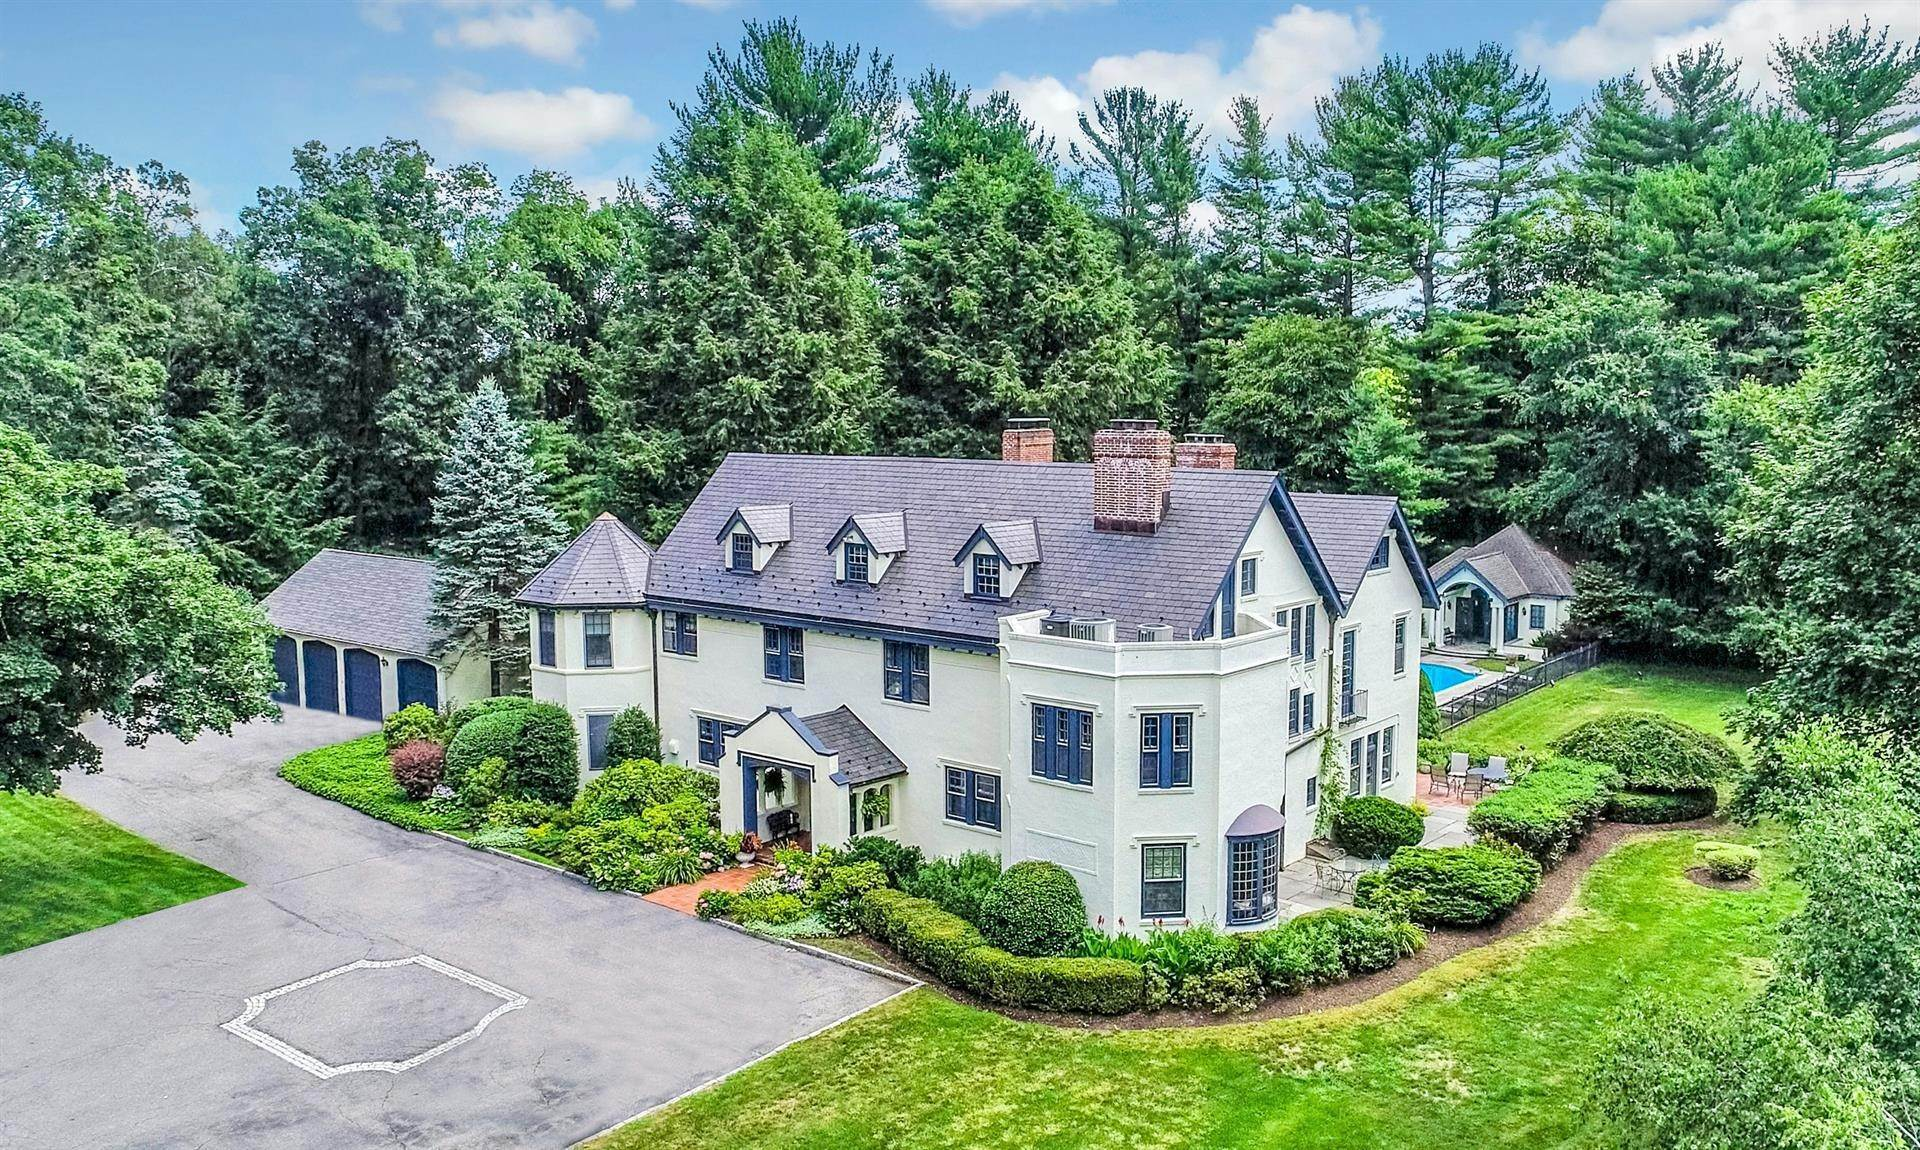 Single Family Home for Sale at Beaconsfield Estate 249 Bedford Center Road Bedford Hills, New York,10507 United States